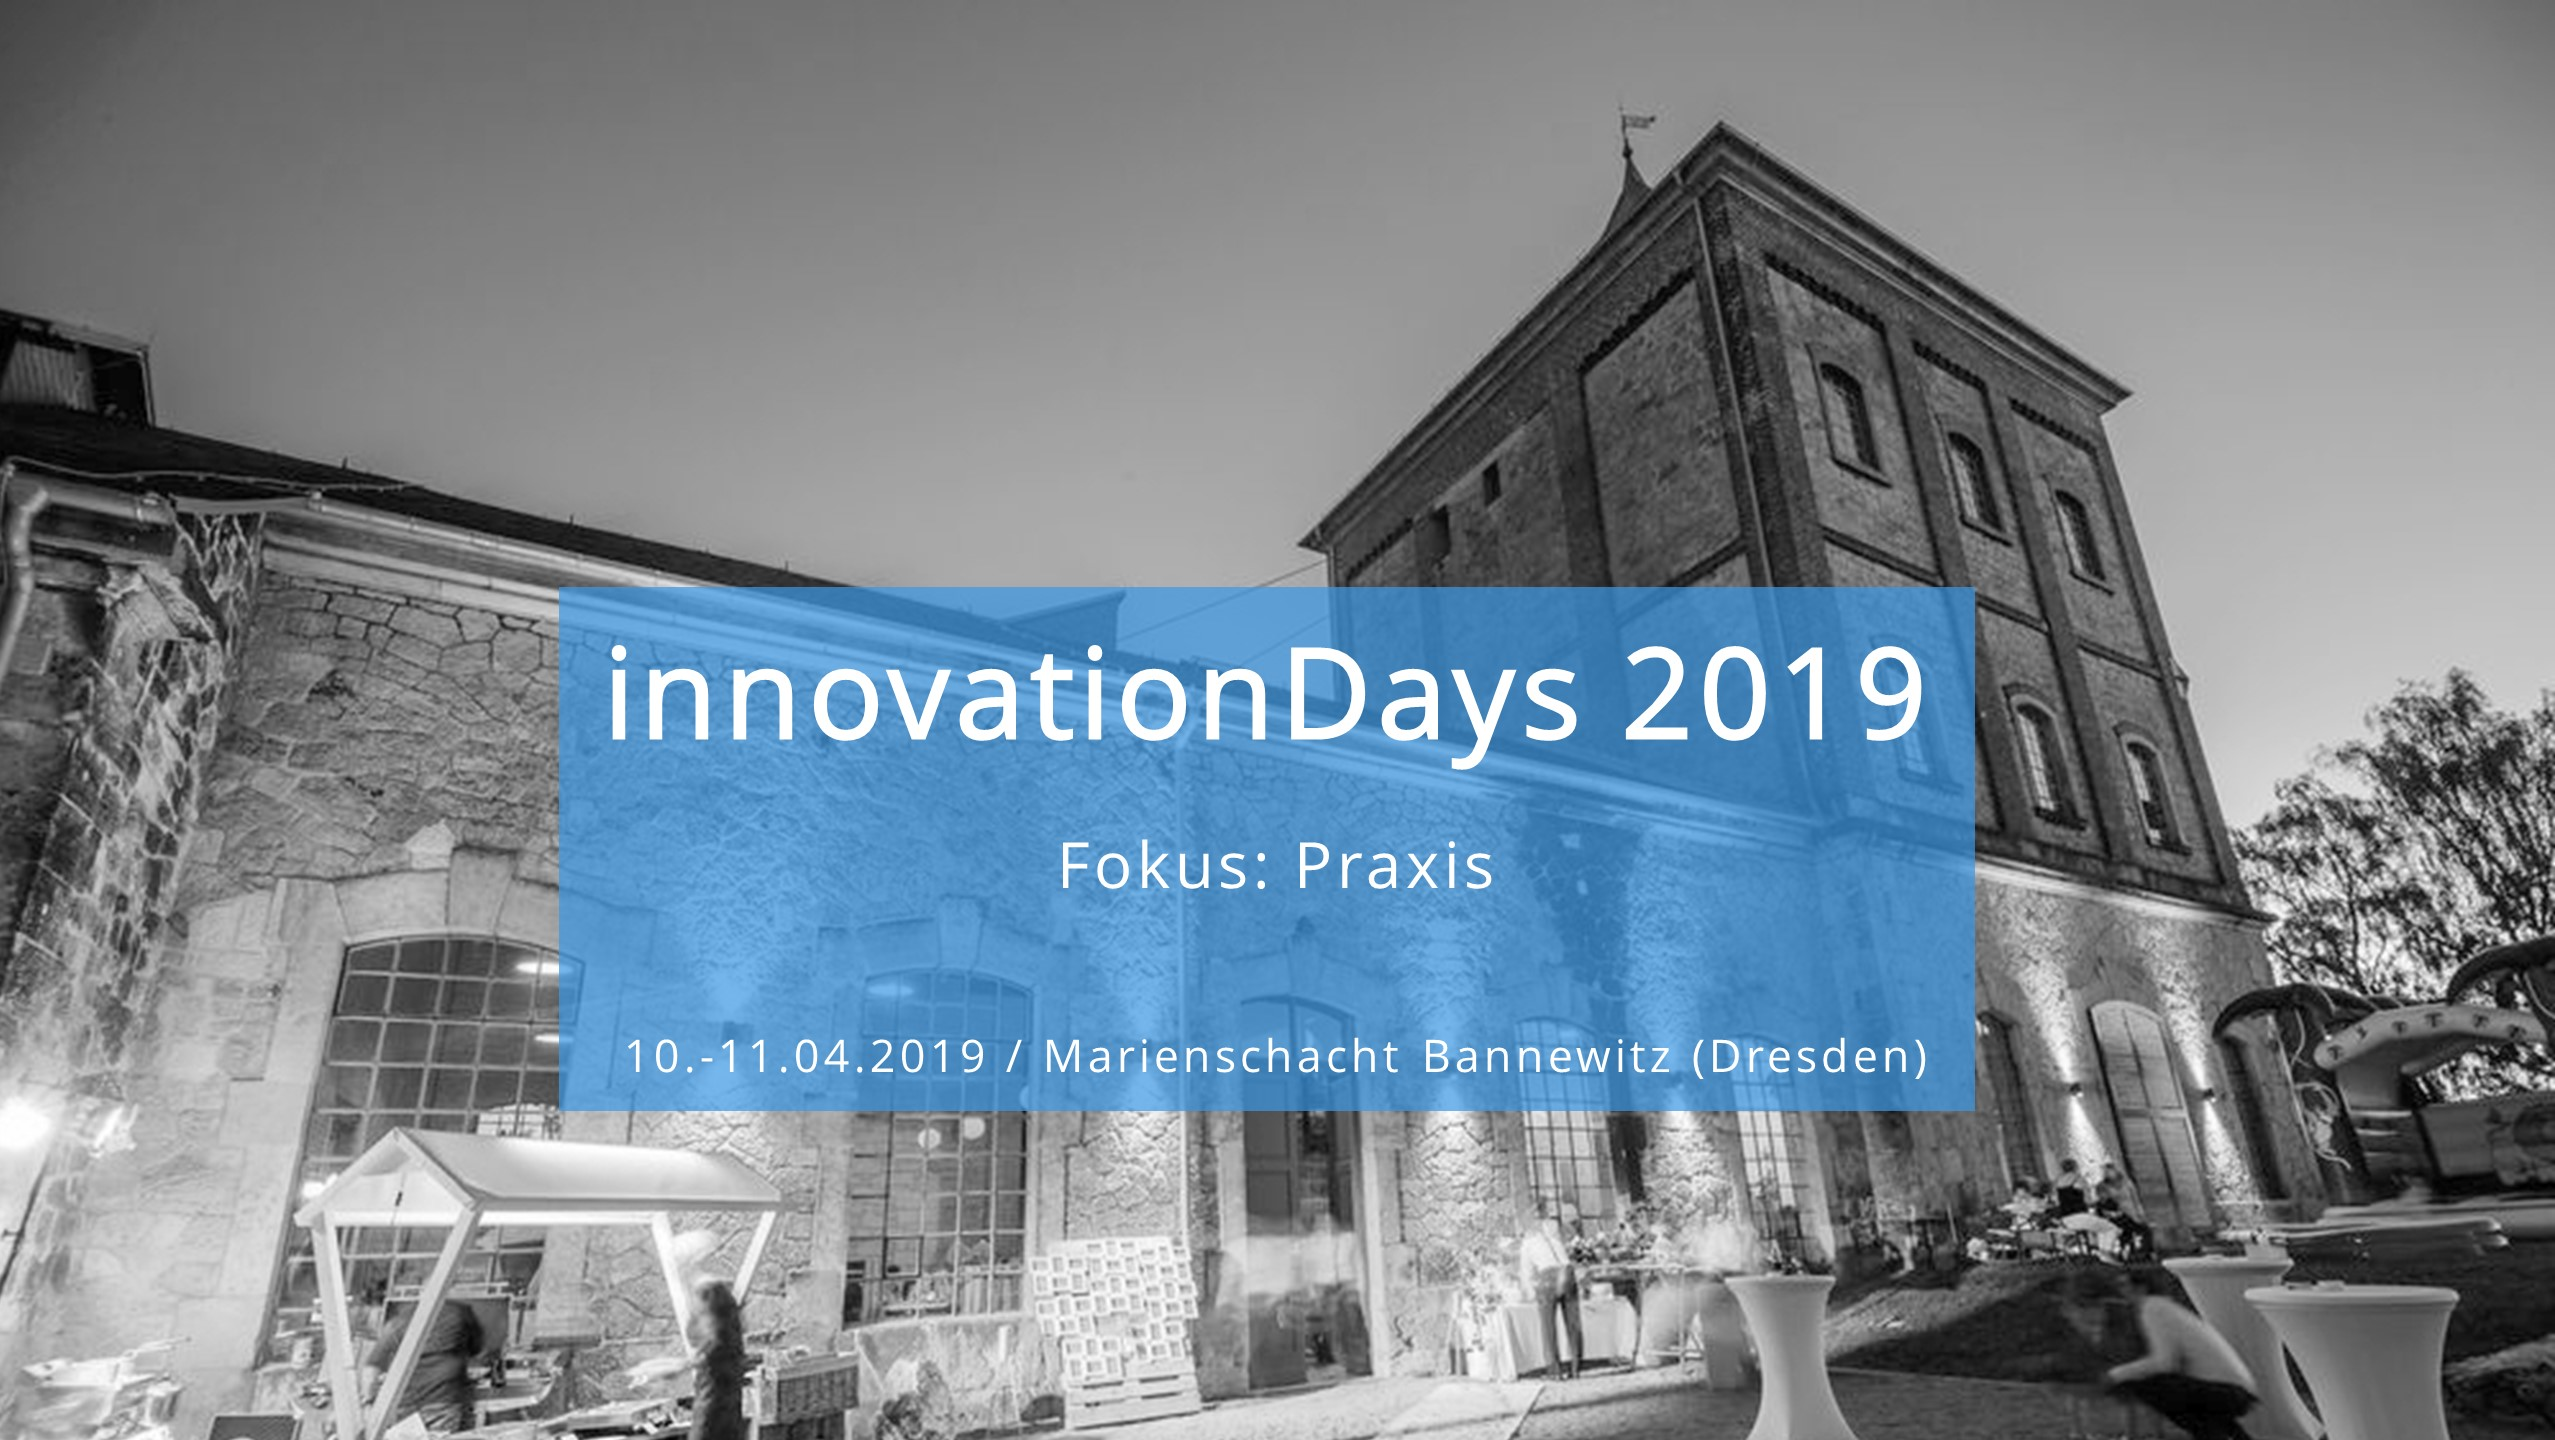 pms.event – innovationDays 2019